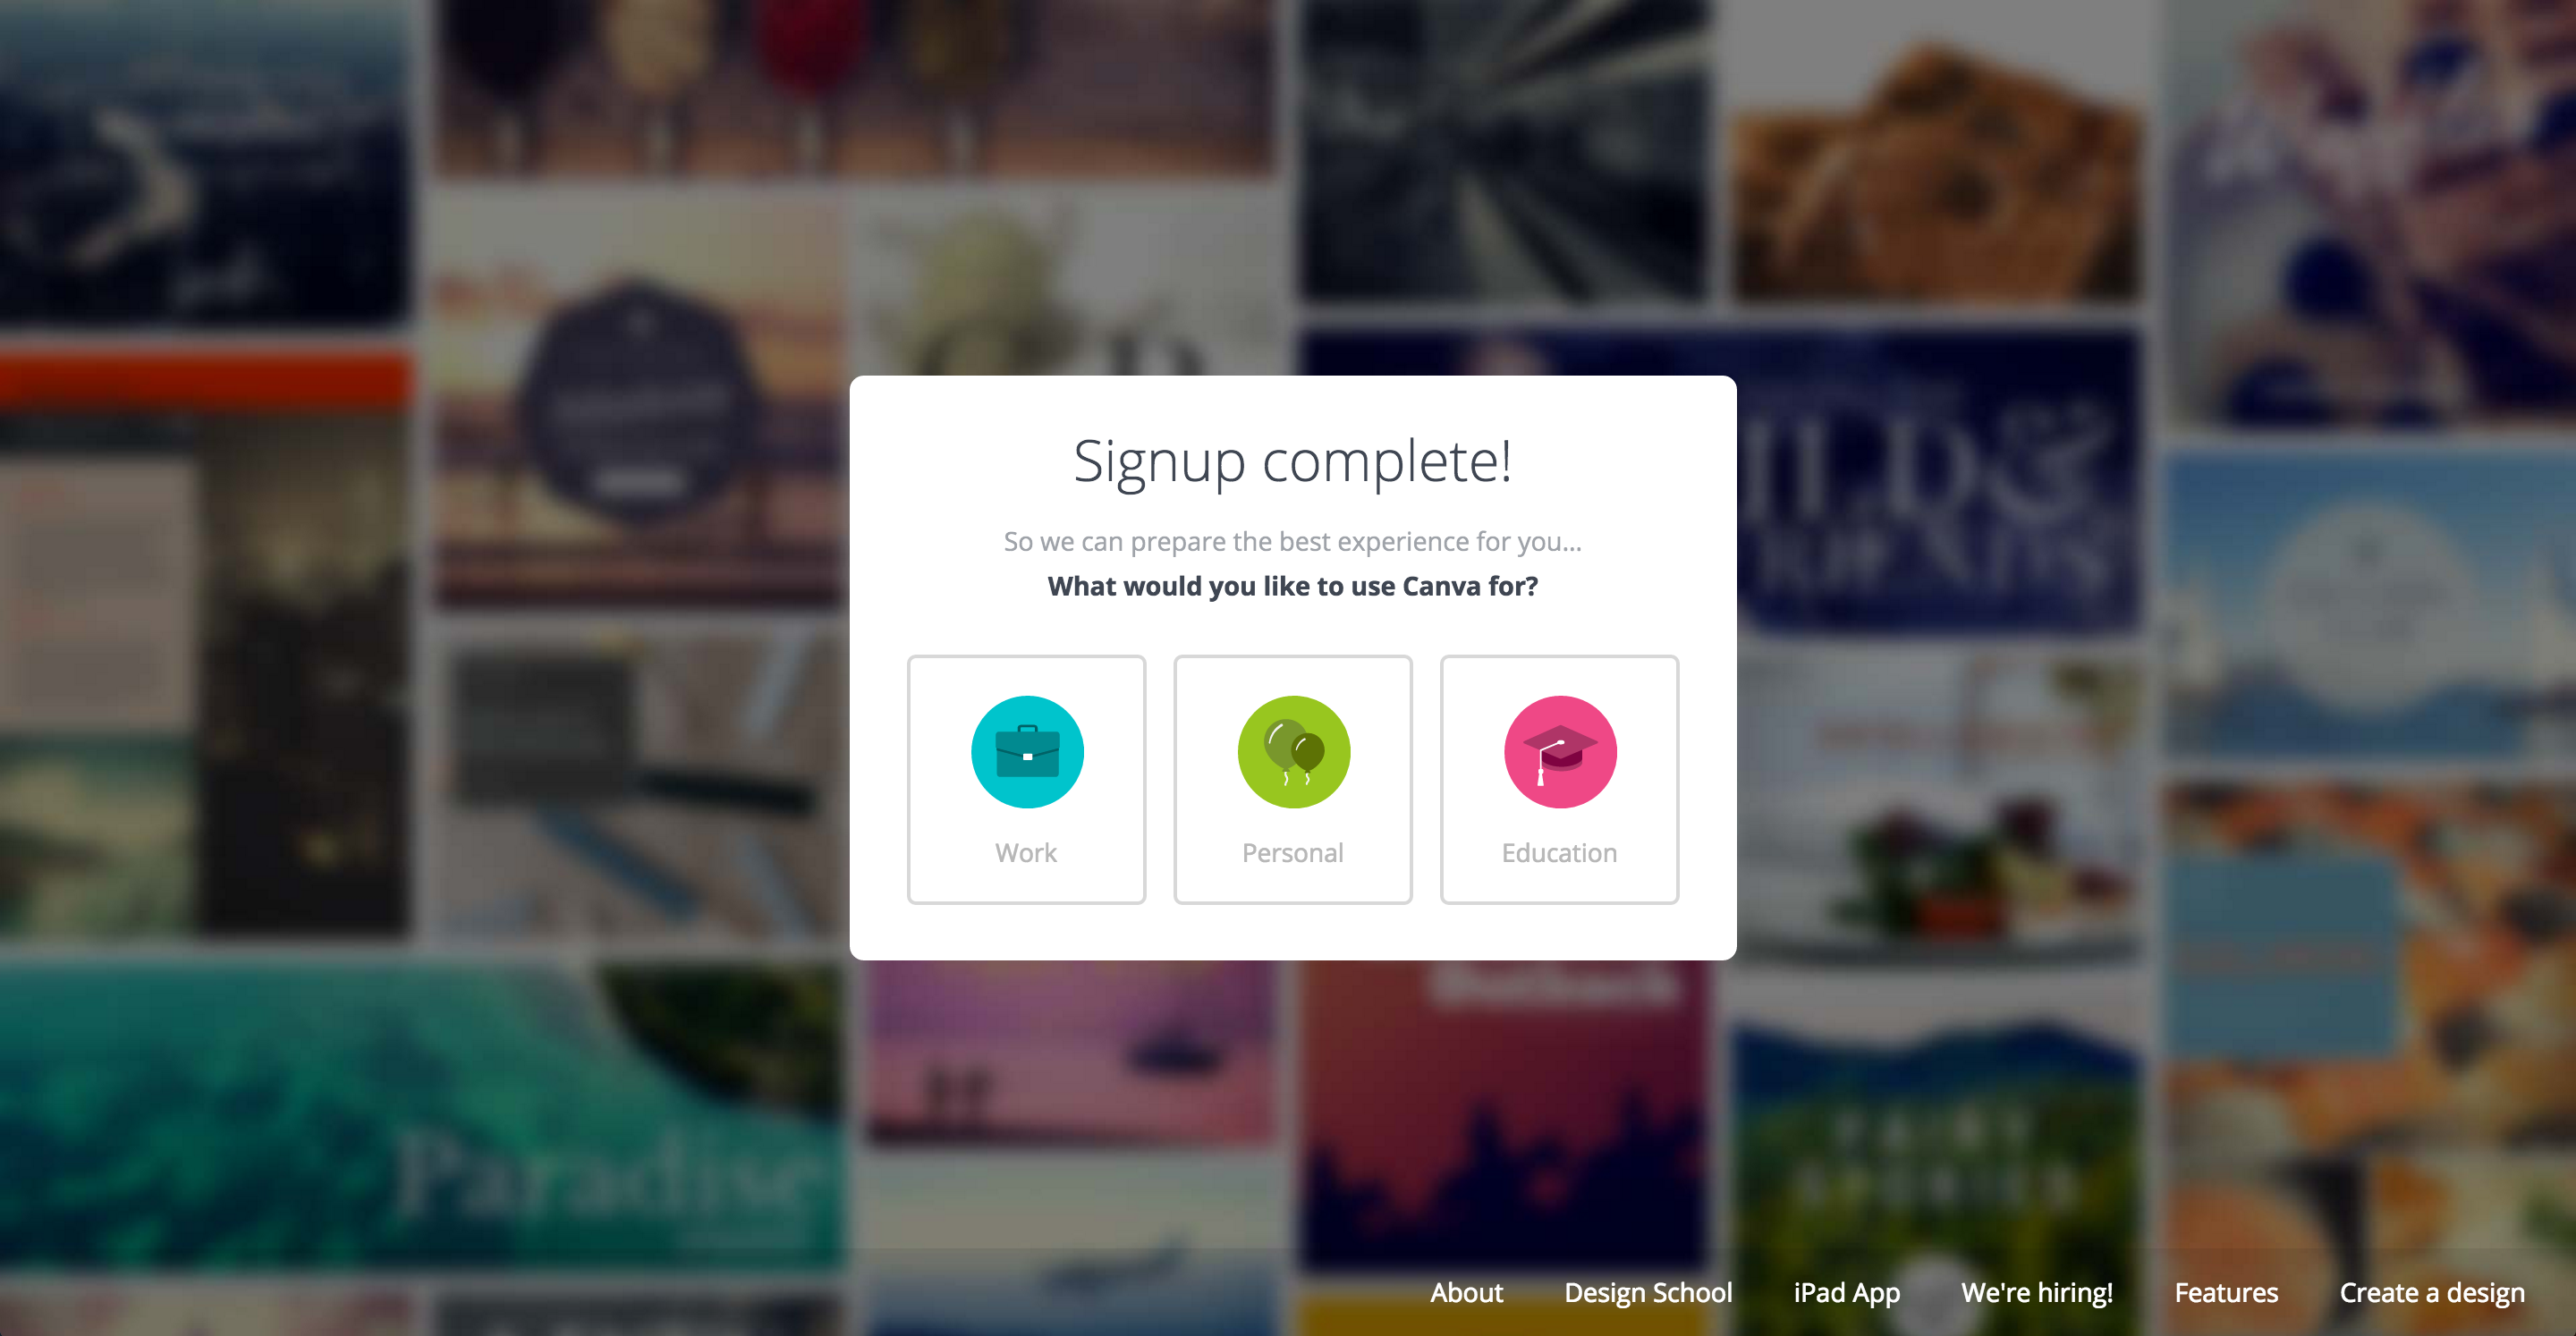 Canva user onboarding by use case